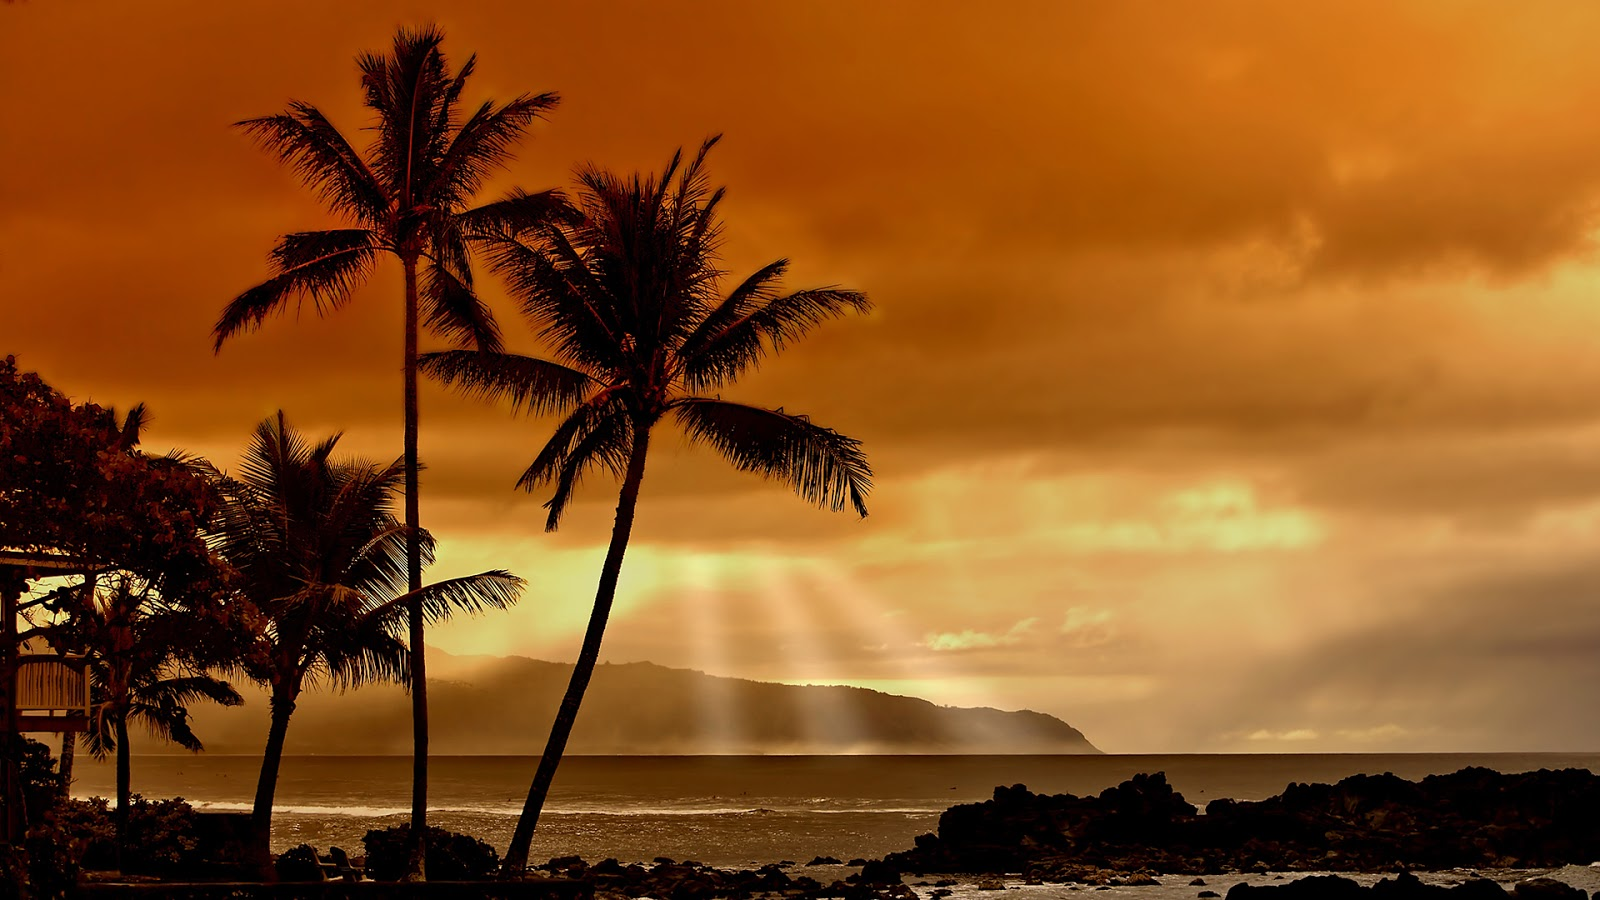 HD WALLPAPERS: Palm trees nature HD wallpaper (1920 x 1080)